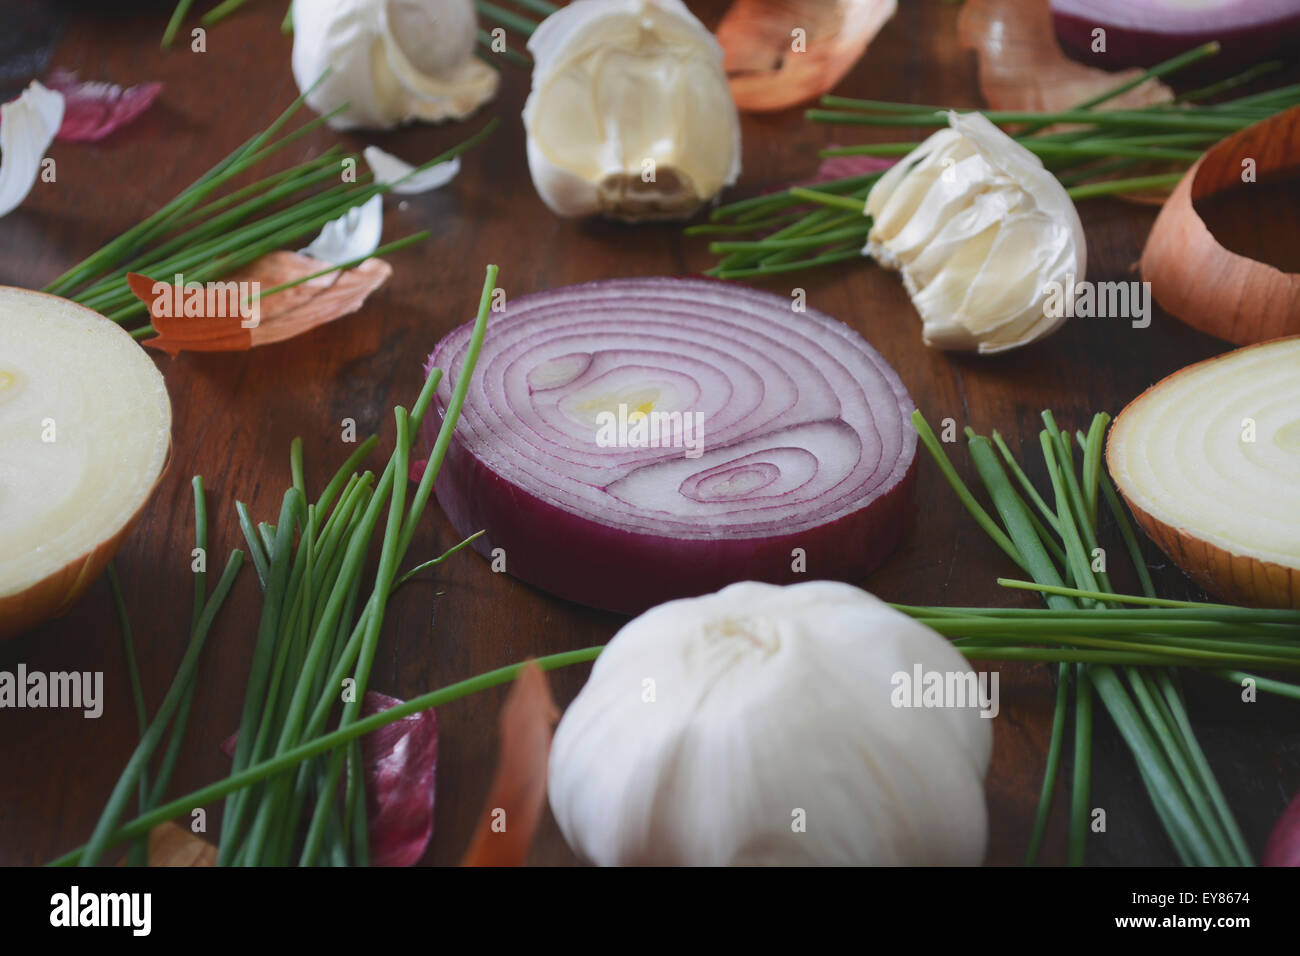 Onions, chives and garlic scattered on wood table for food preparation and cooking concept, with applied retro vintage - Stock Image